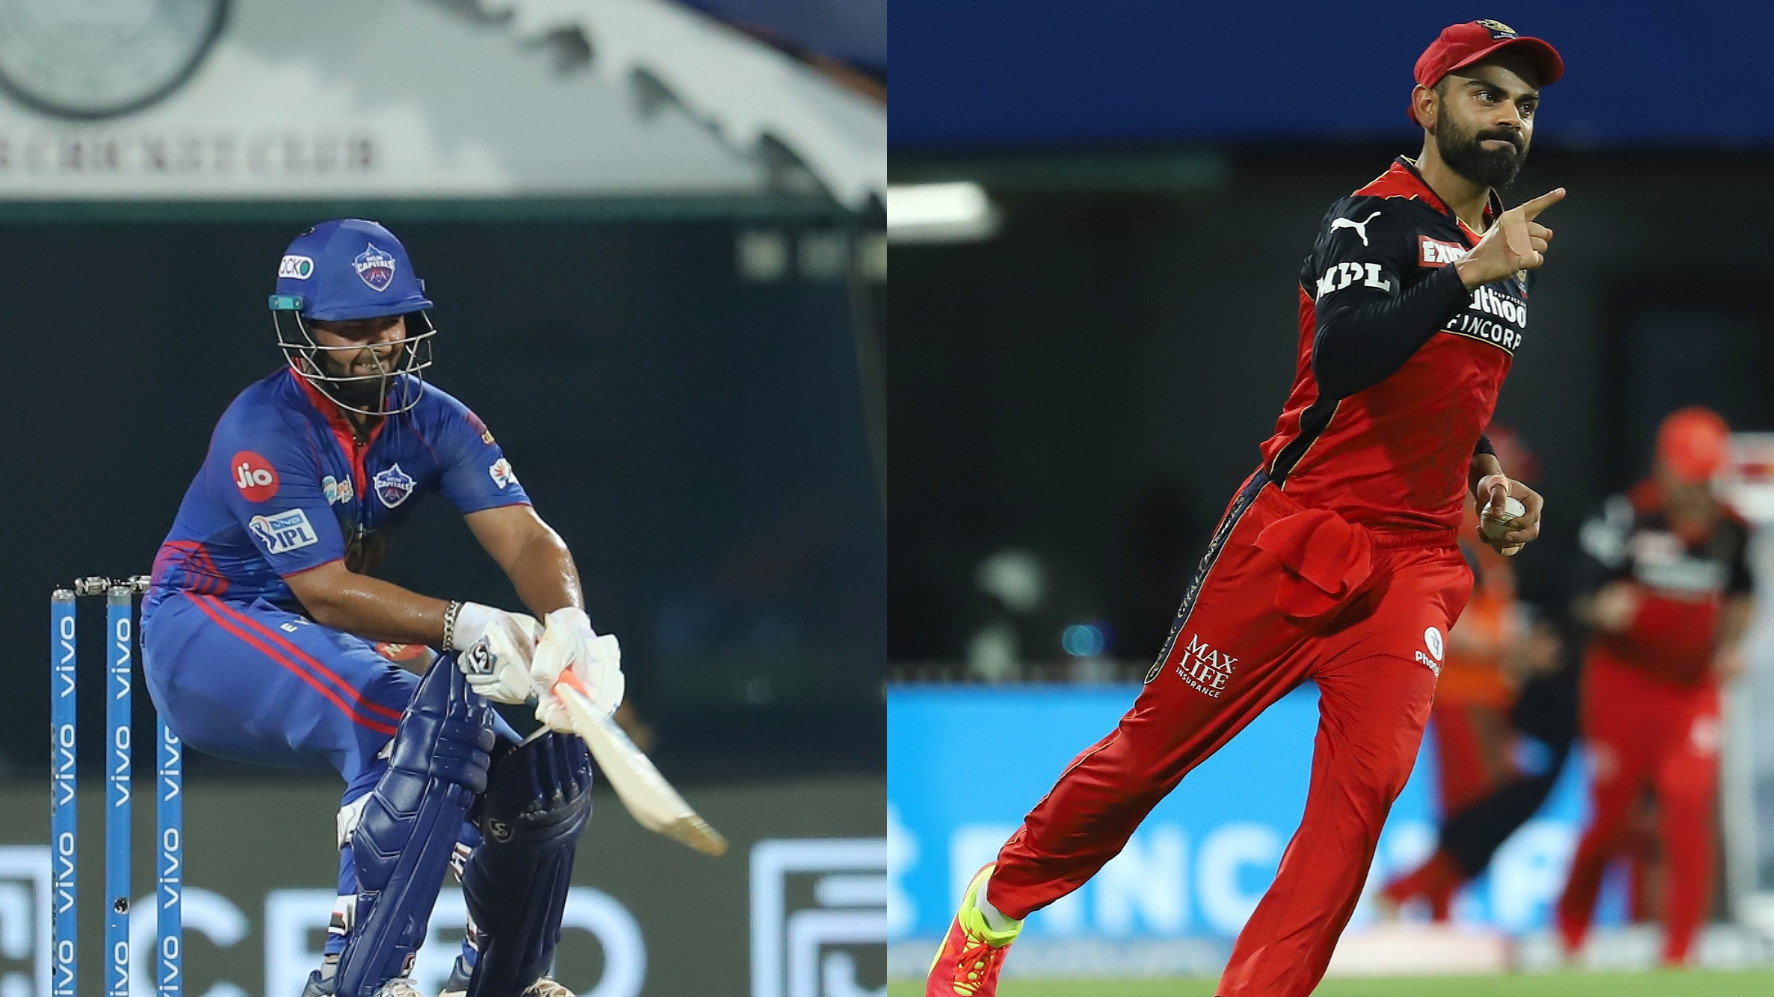 IPL 2021: Match 22, DC v RCB - COC Predicted Playing XIs